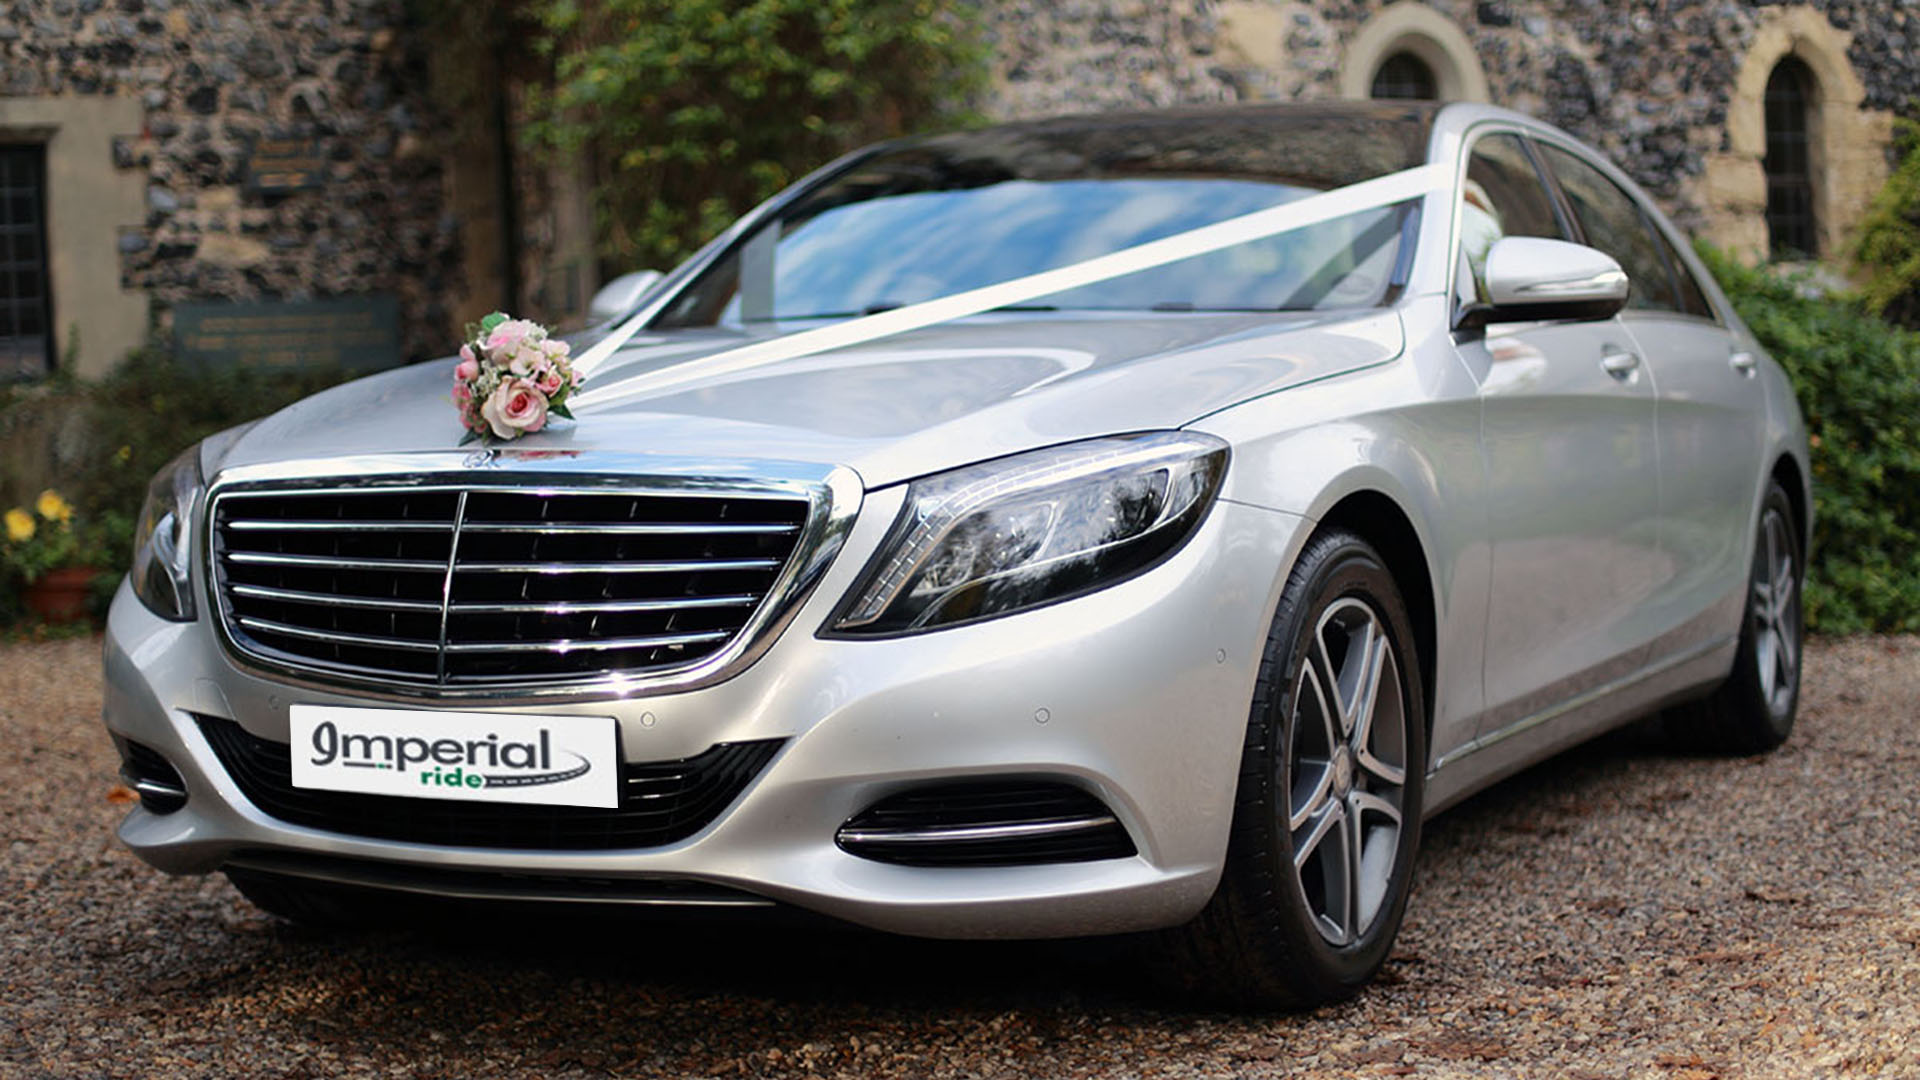 s-class-wedding-hire-in-merton